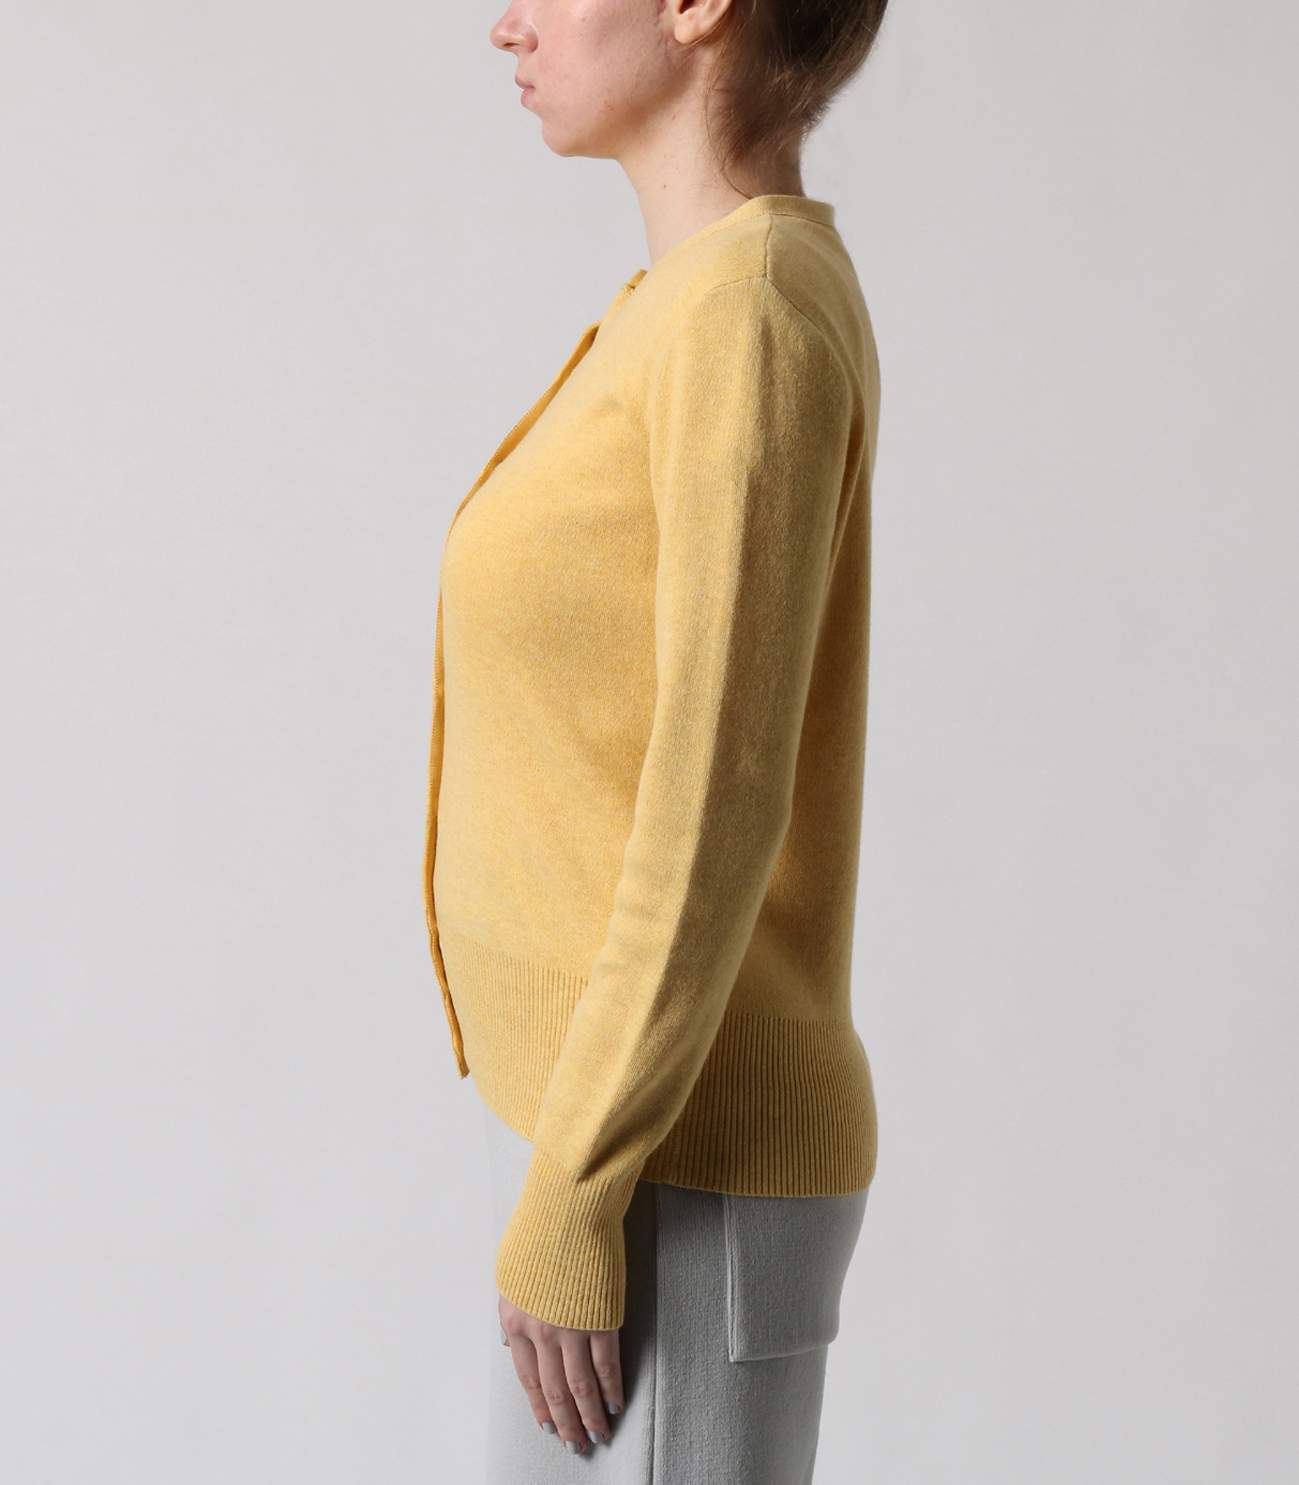 cotton melange smooth l/s cardy 詳細画像 sunny 3